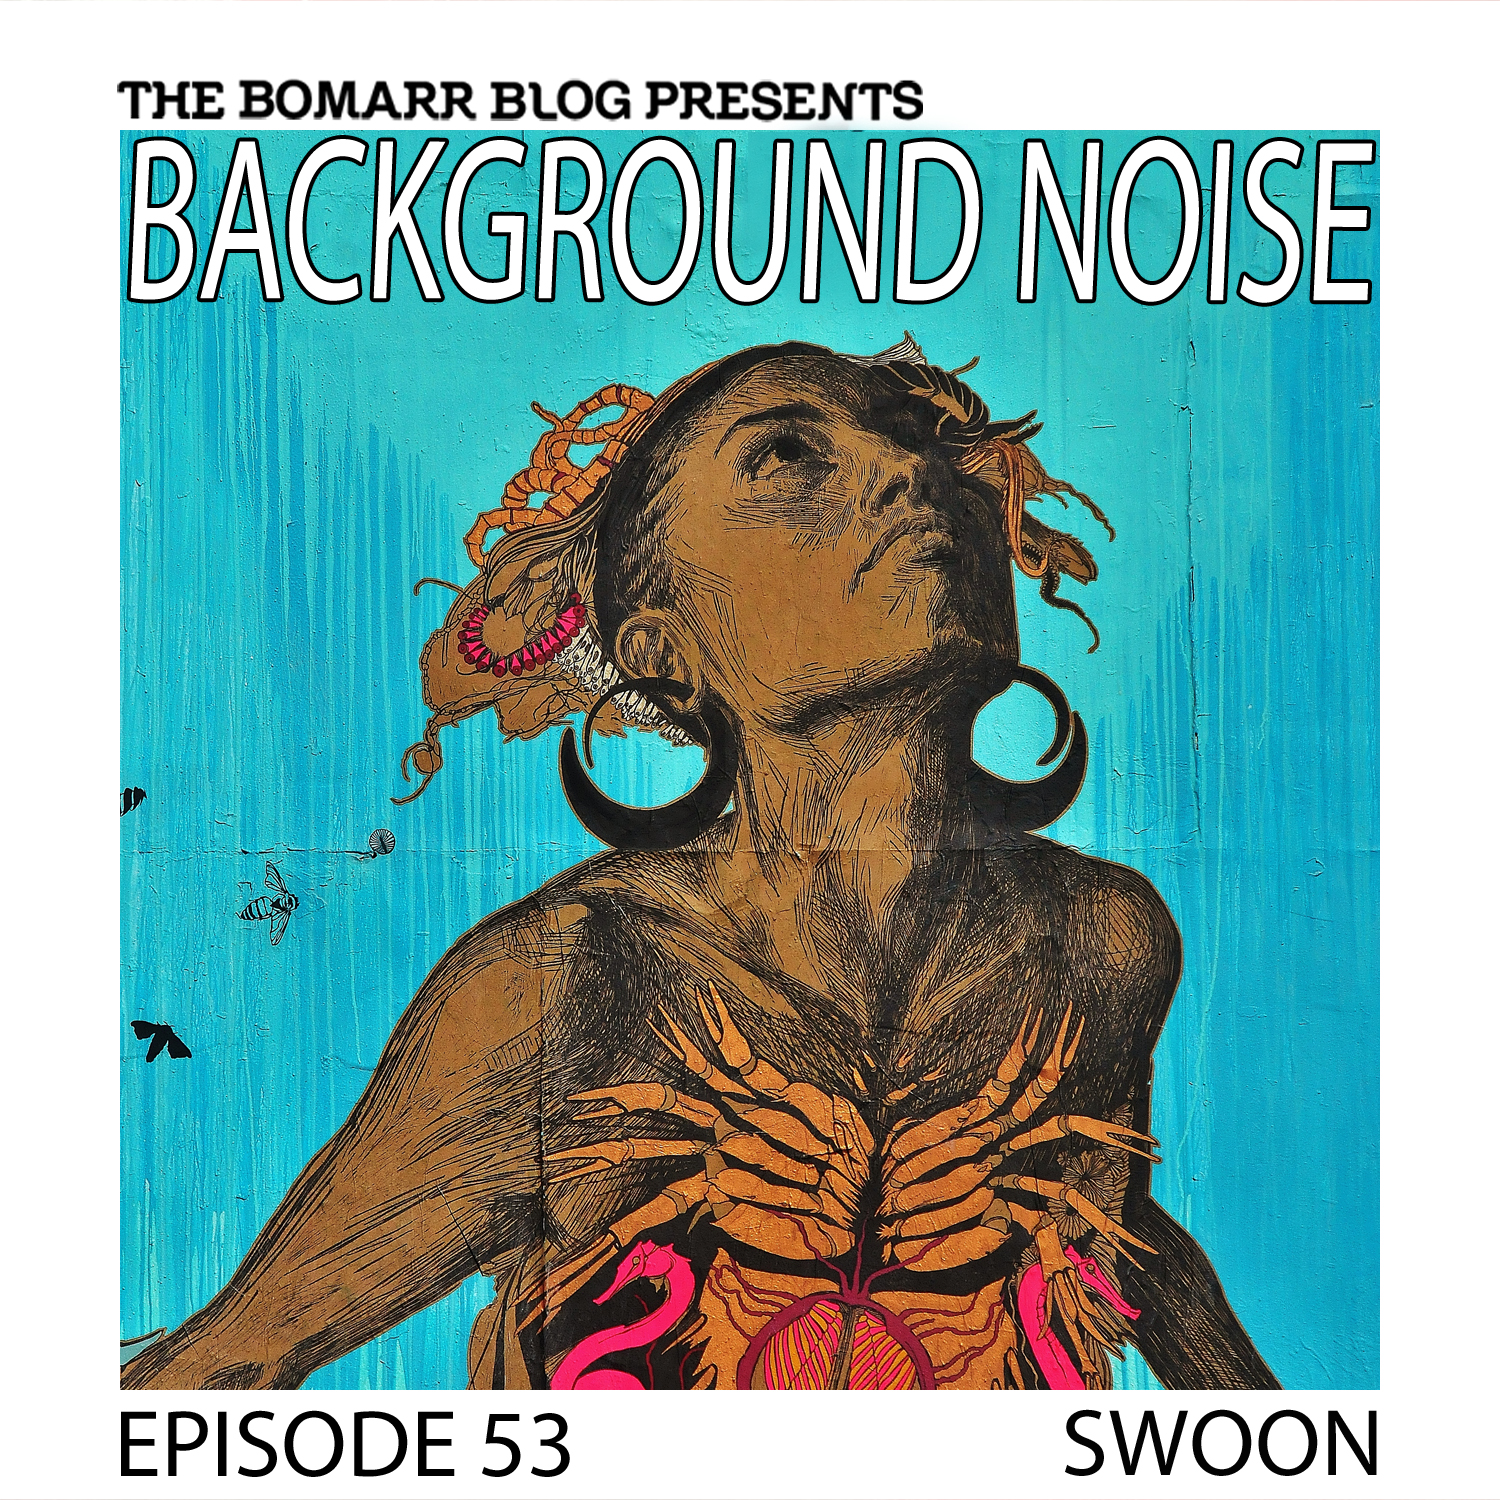 THE BACKGROUND NOISE PODCAST SERIES FOCUSES ON THE MUSIC THAT ARTISTS LISTEN TO WHEN THEY WORK, WHAT MUSIC INSPIRES THEM, OR JUST MUSIC THEY LIKE. THIS WEEK, IN EPISODE 53, THE FOCUS IS ON ARTIST SWOON